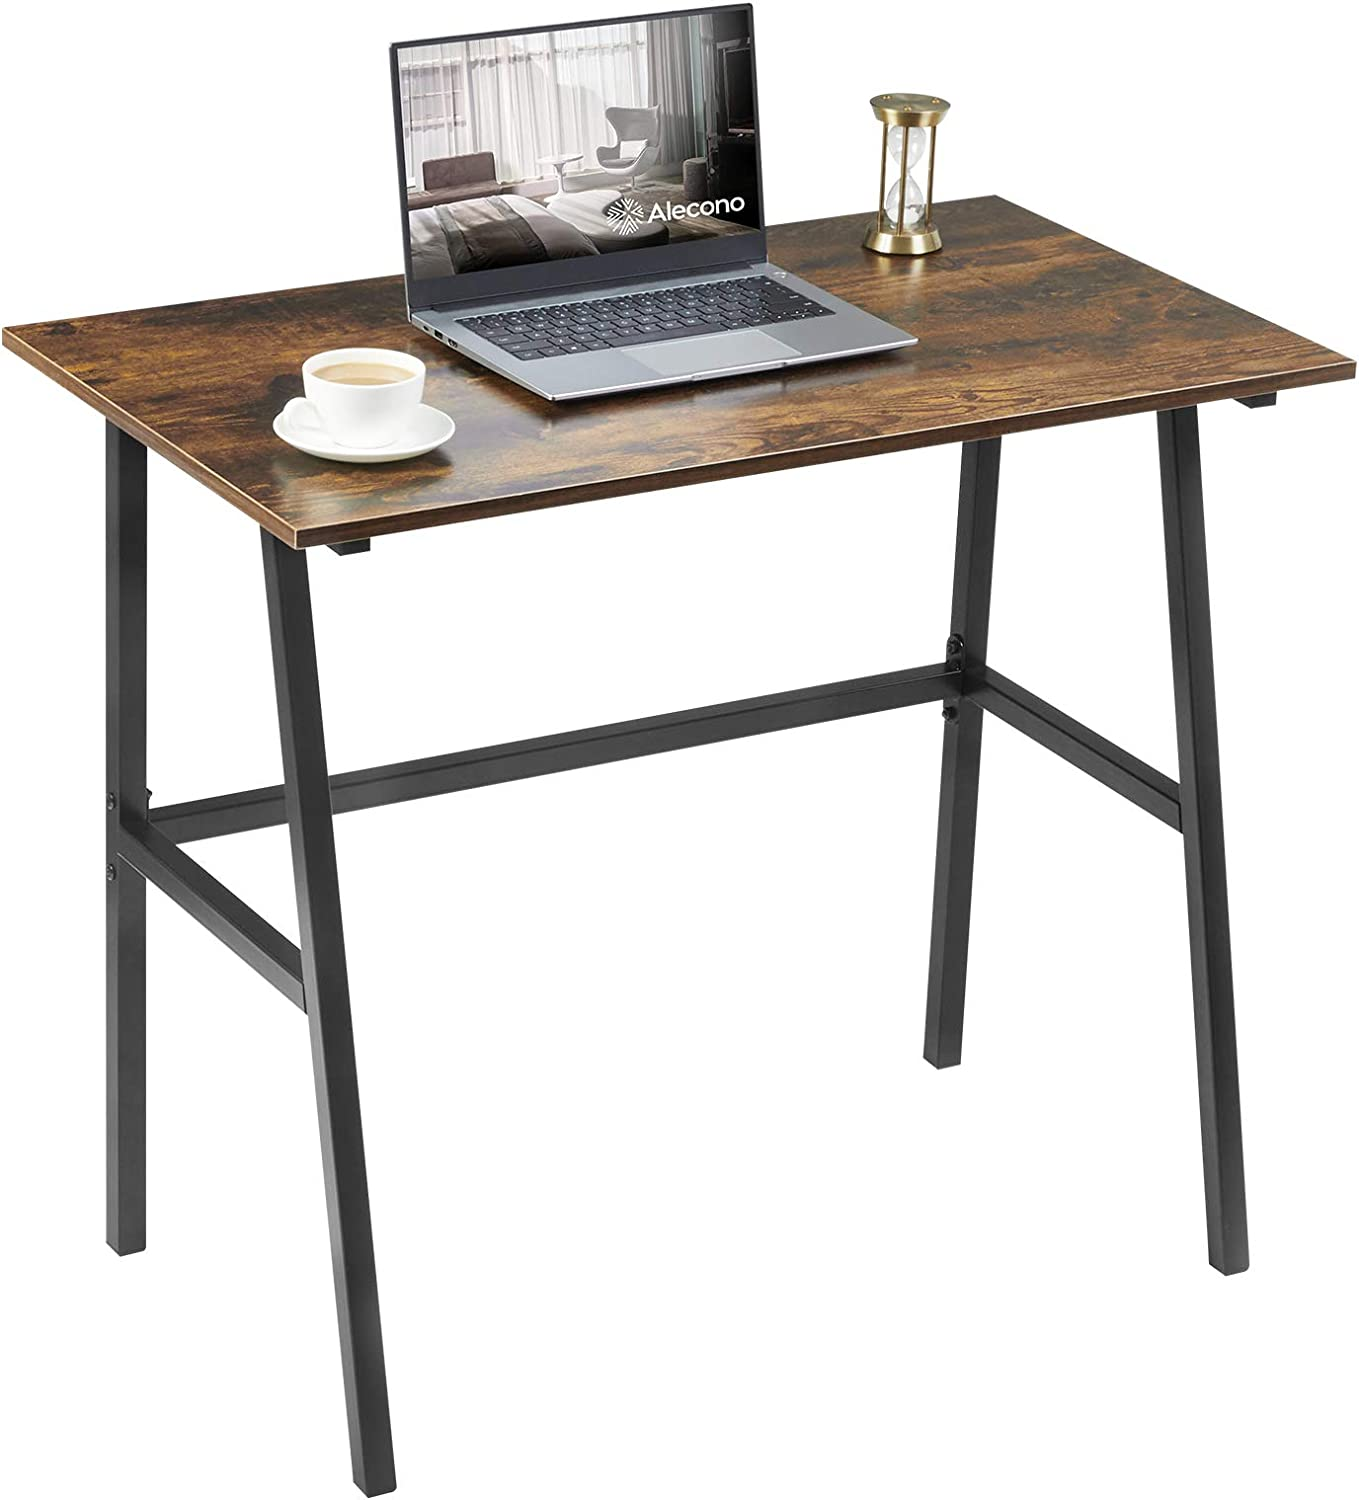 Small Computer Max 80% OFF Desk Excellence 35'' Study Mod for Writing Spaces